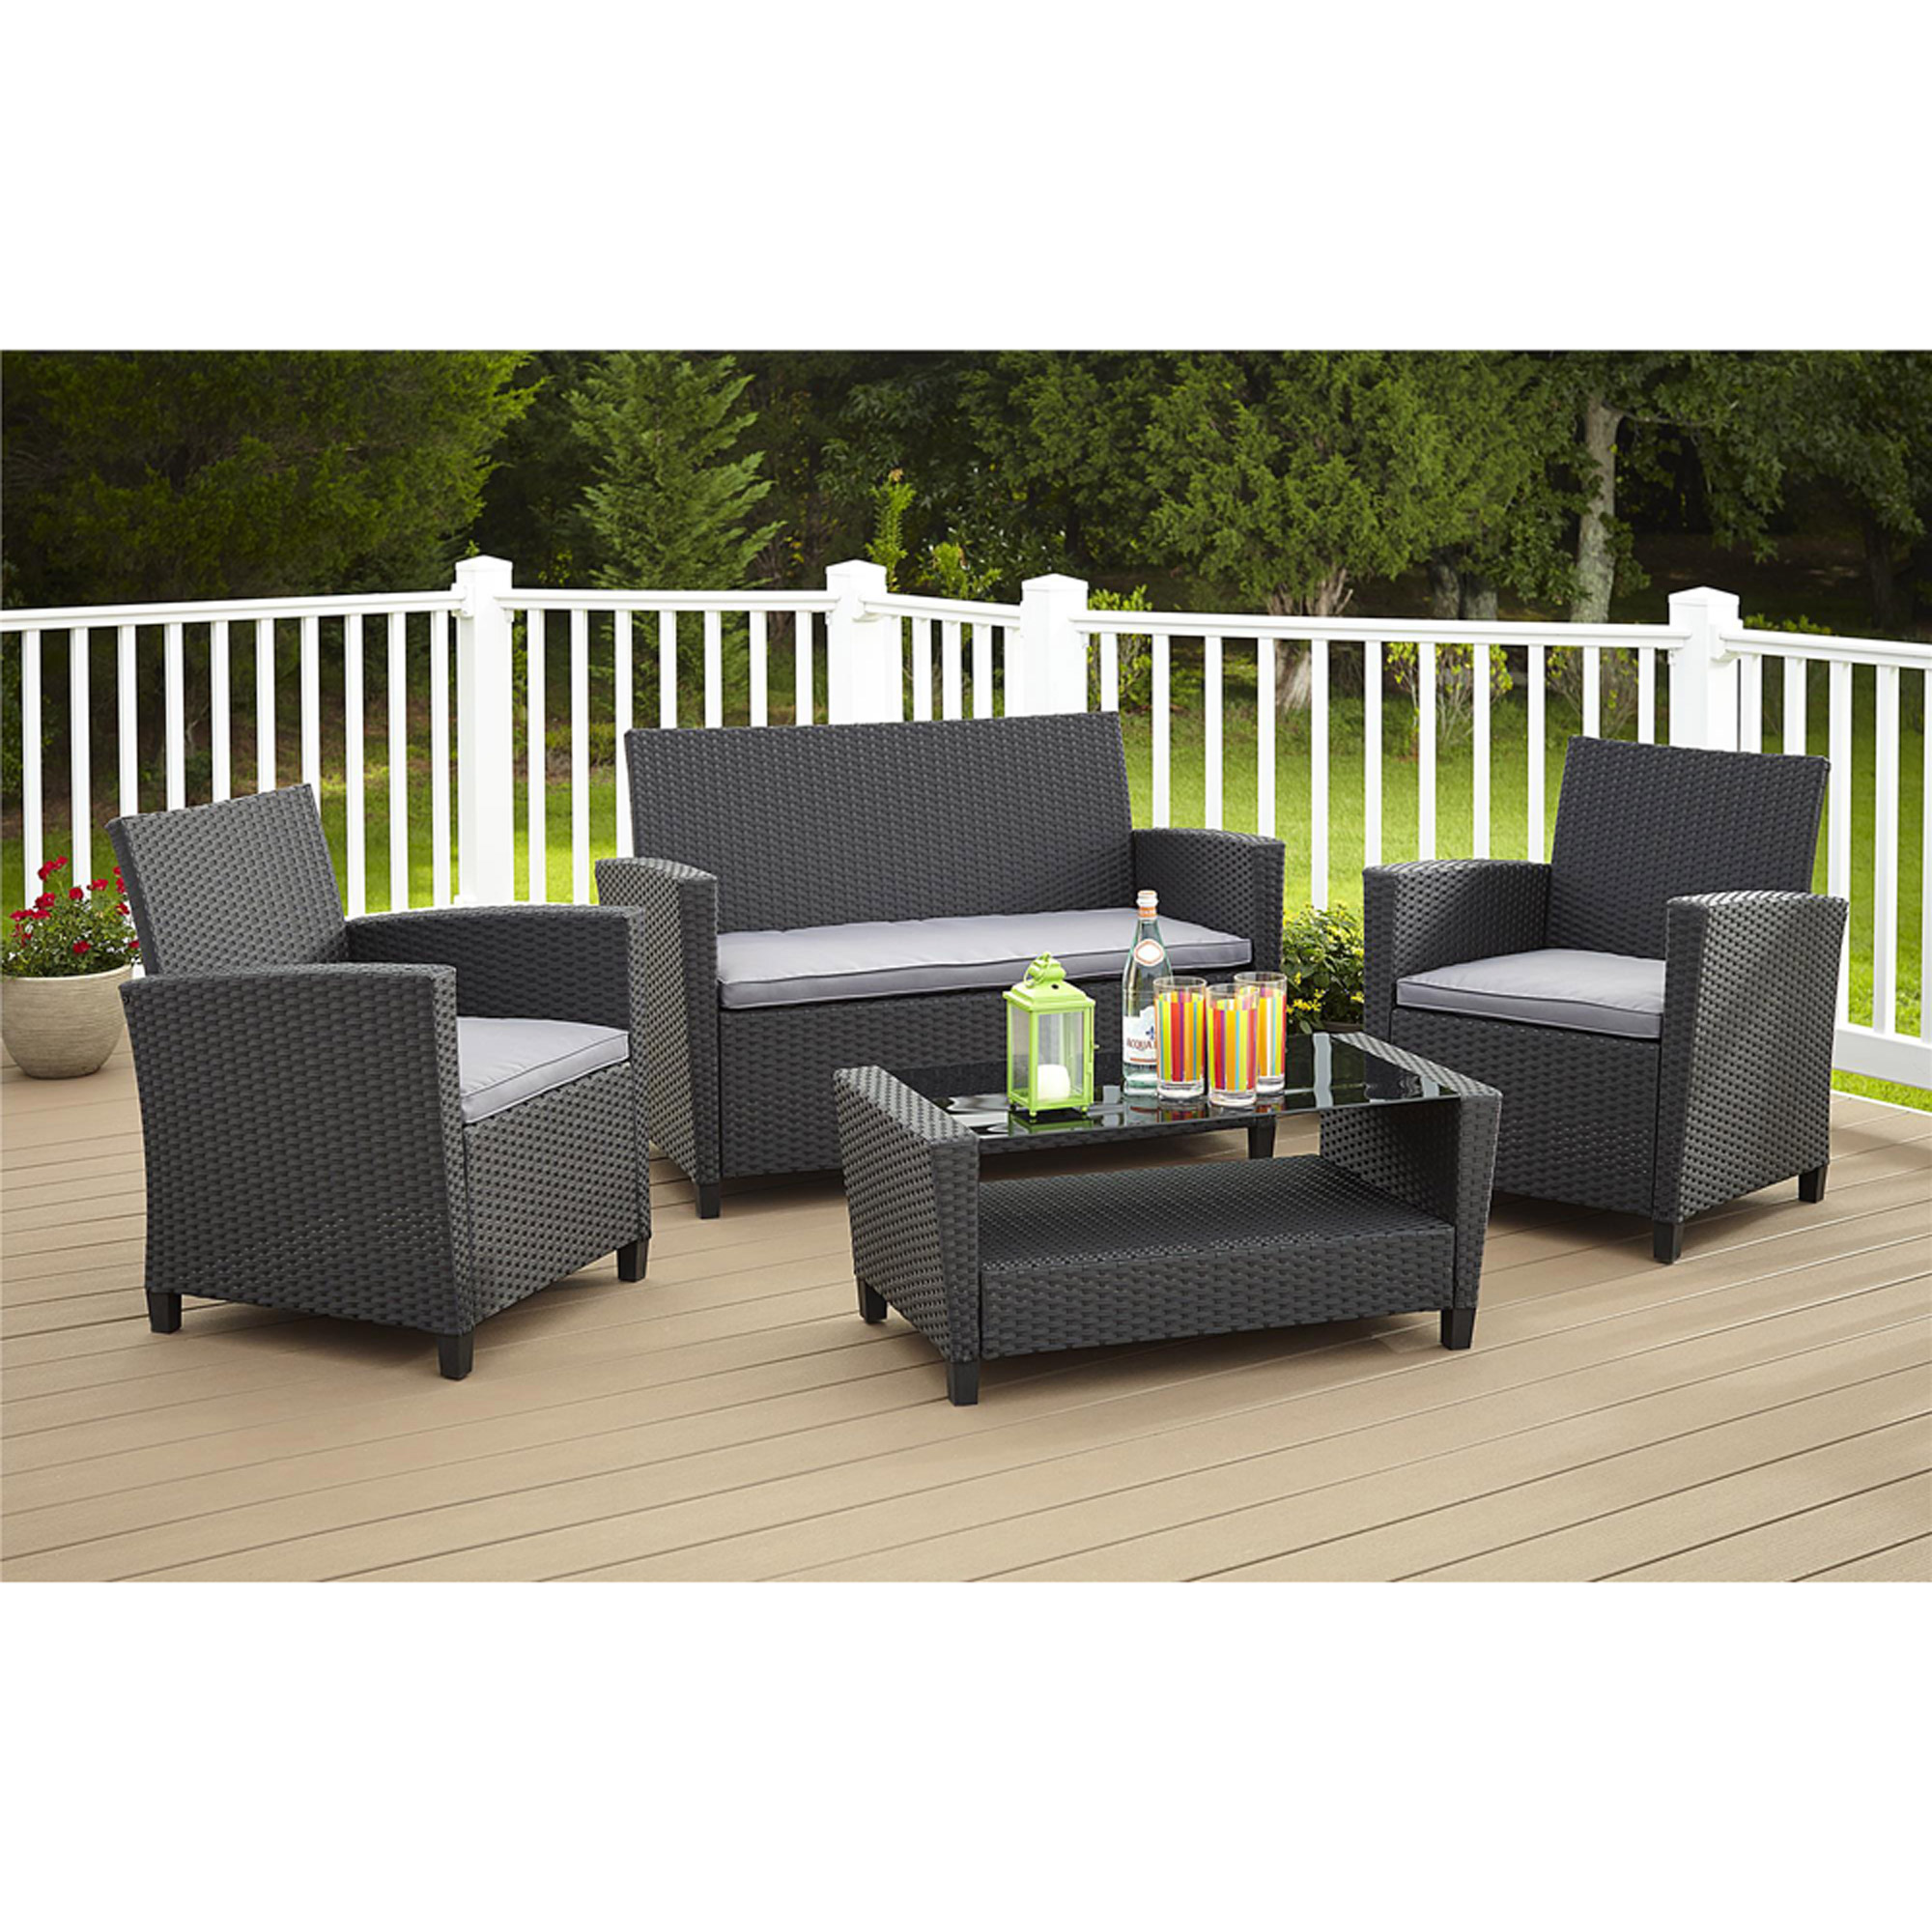 cosco outdoor malmo 4 piece resin wicker patio conversation set walmartcom - Garden Furniture 4 All